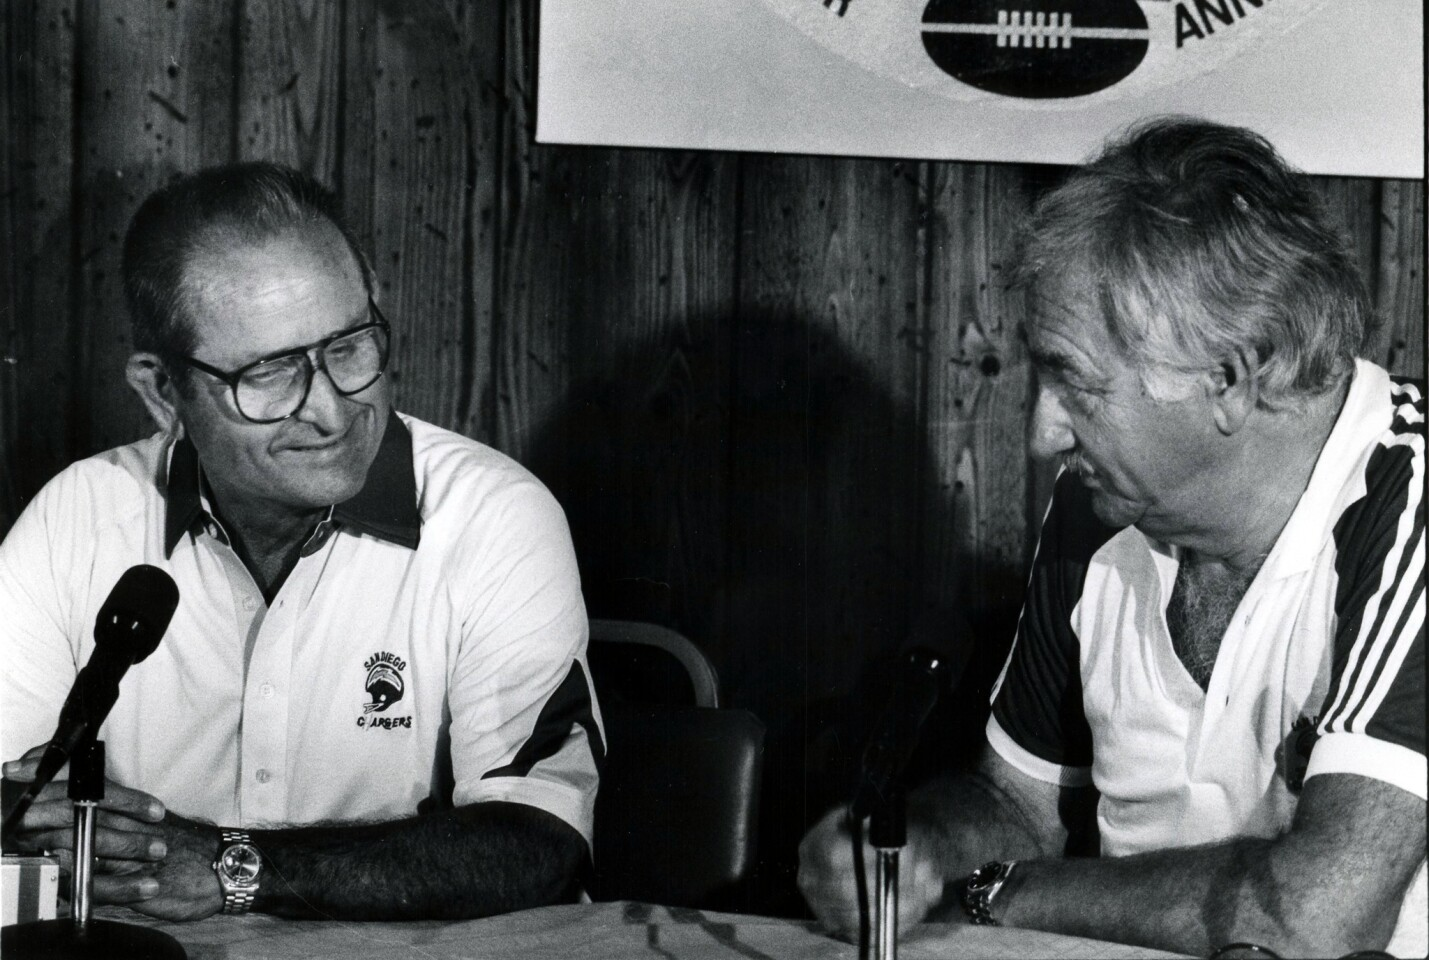 New Chargers owner Alex Spanos (left) meets the sporting press with former owner Gene Klein in the dining hall of the team's UCSD training compound on Aug. 2, 1984. Peter Koleman